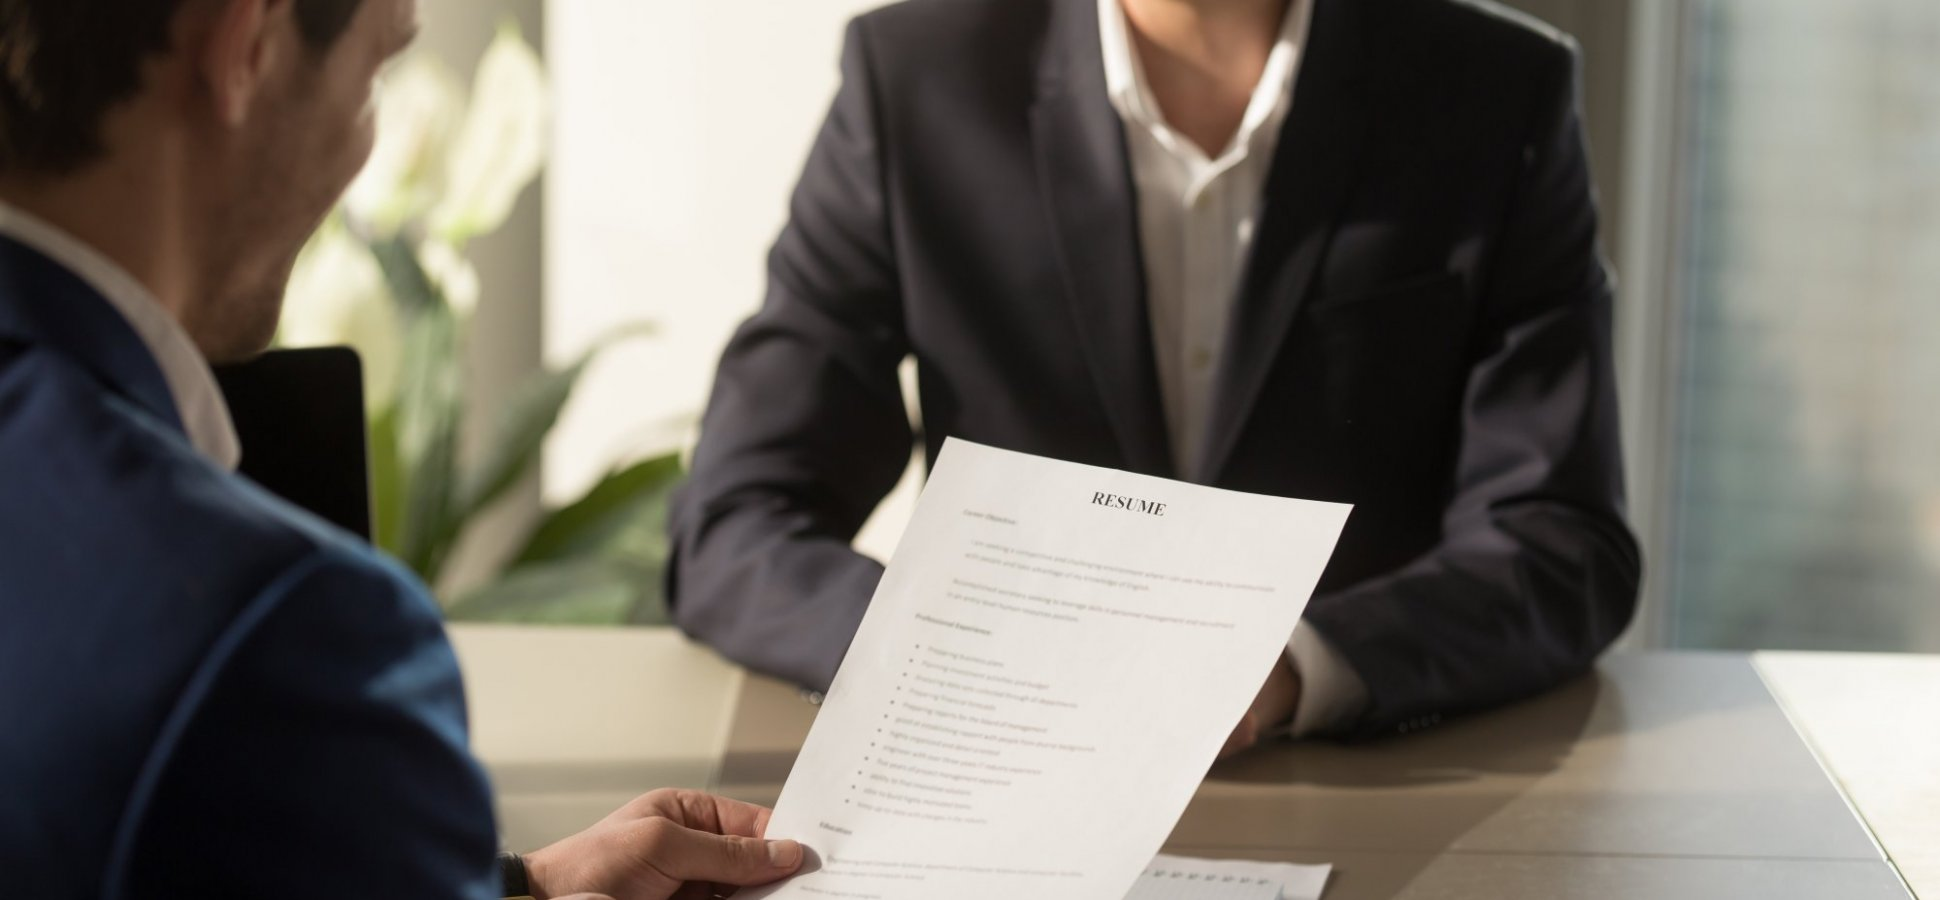 5 Things Your Cover Letter Needs If You Want People to Read It, According to a Recruiter